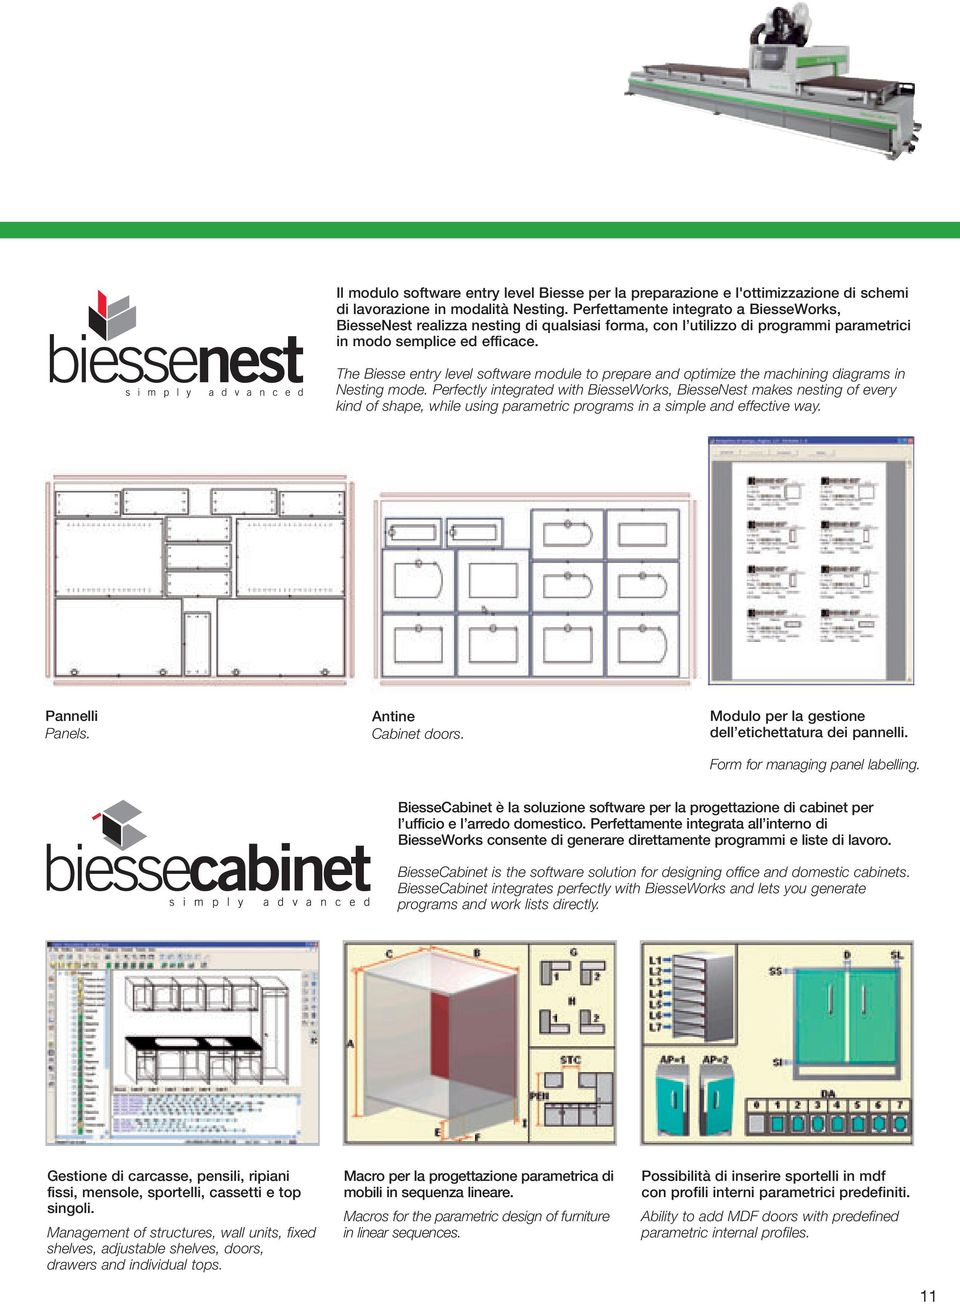 The Biesse entry level software module to prepare and optimize the machining diagrams in Nesting mode.